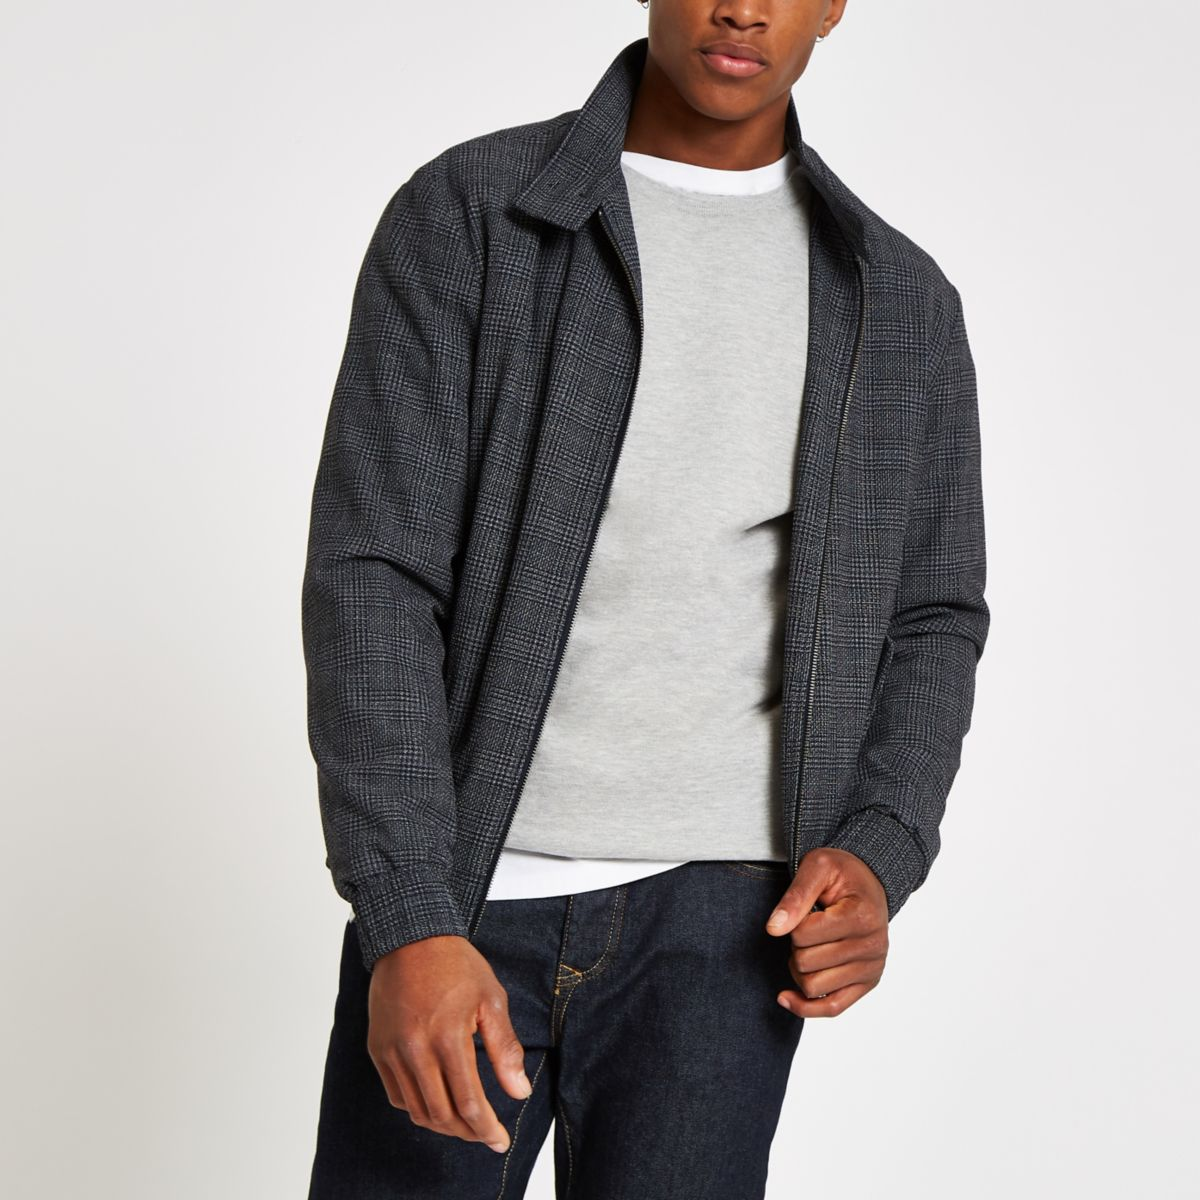 Selected Homme grey Harrington jacket